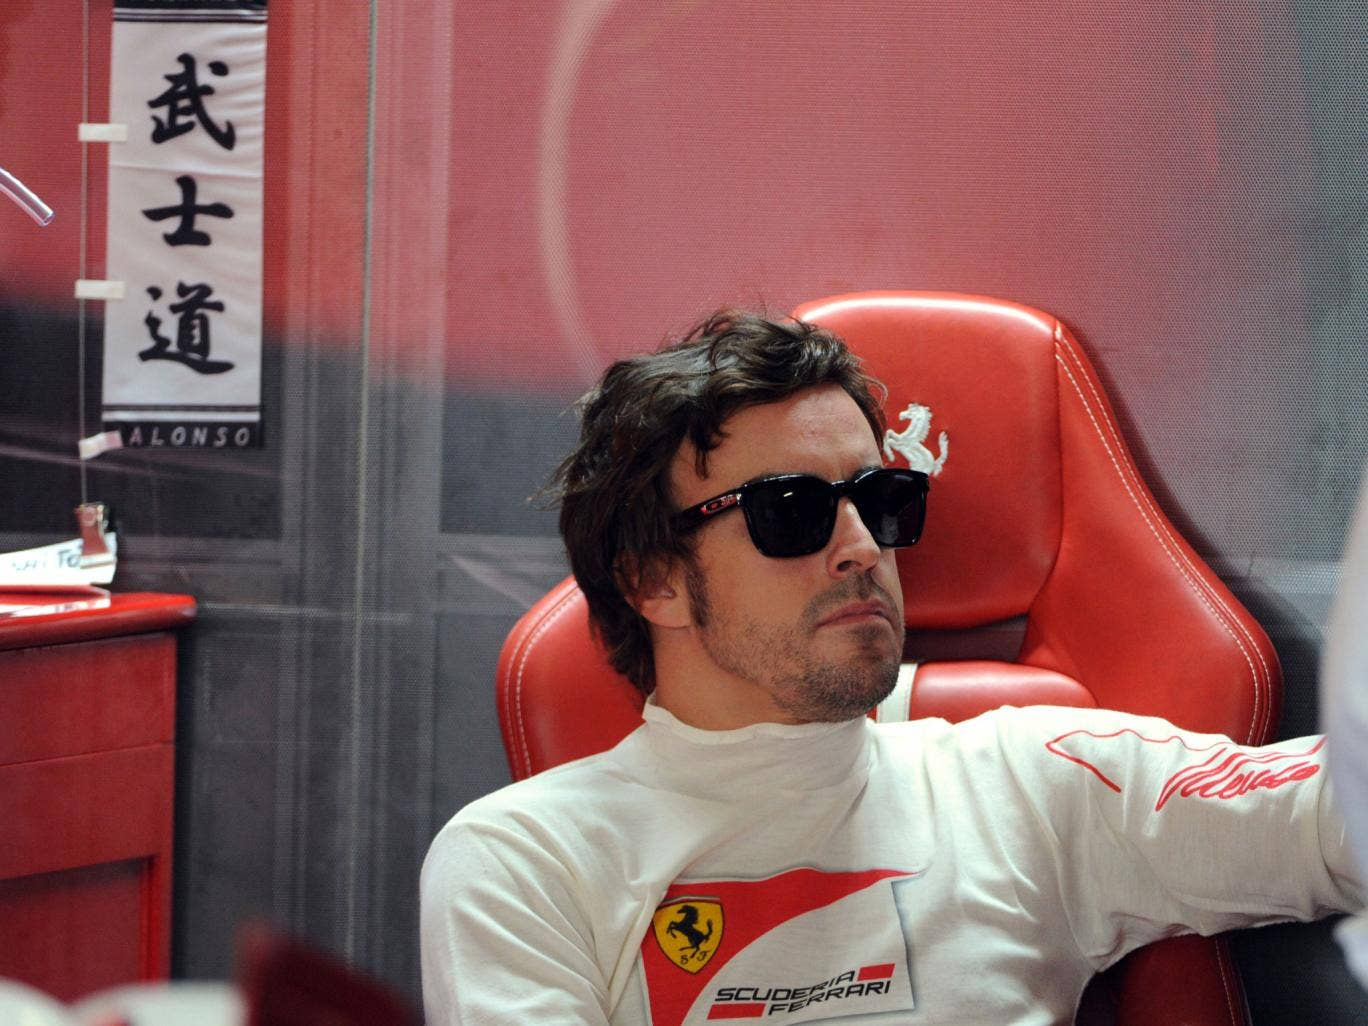 Fernando Alonso has admitted defeat in the race for the 2013 Formula One drivers' championship